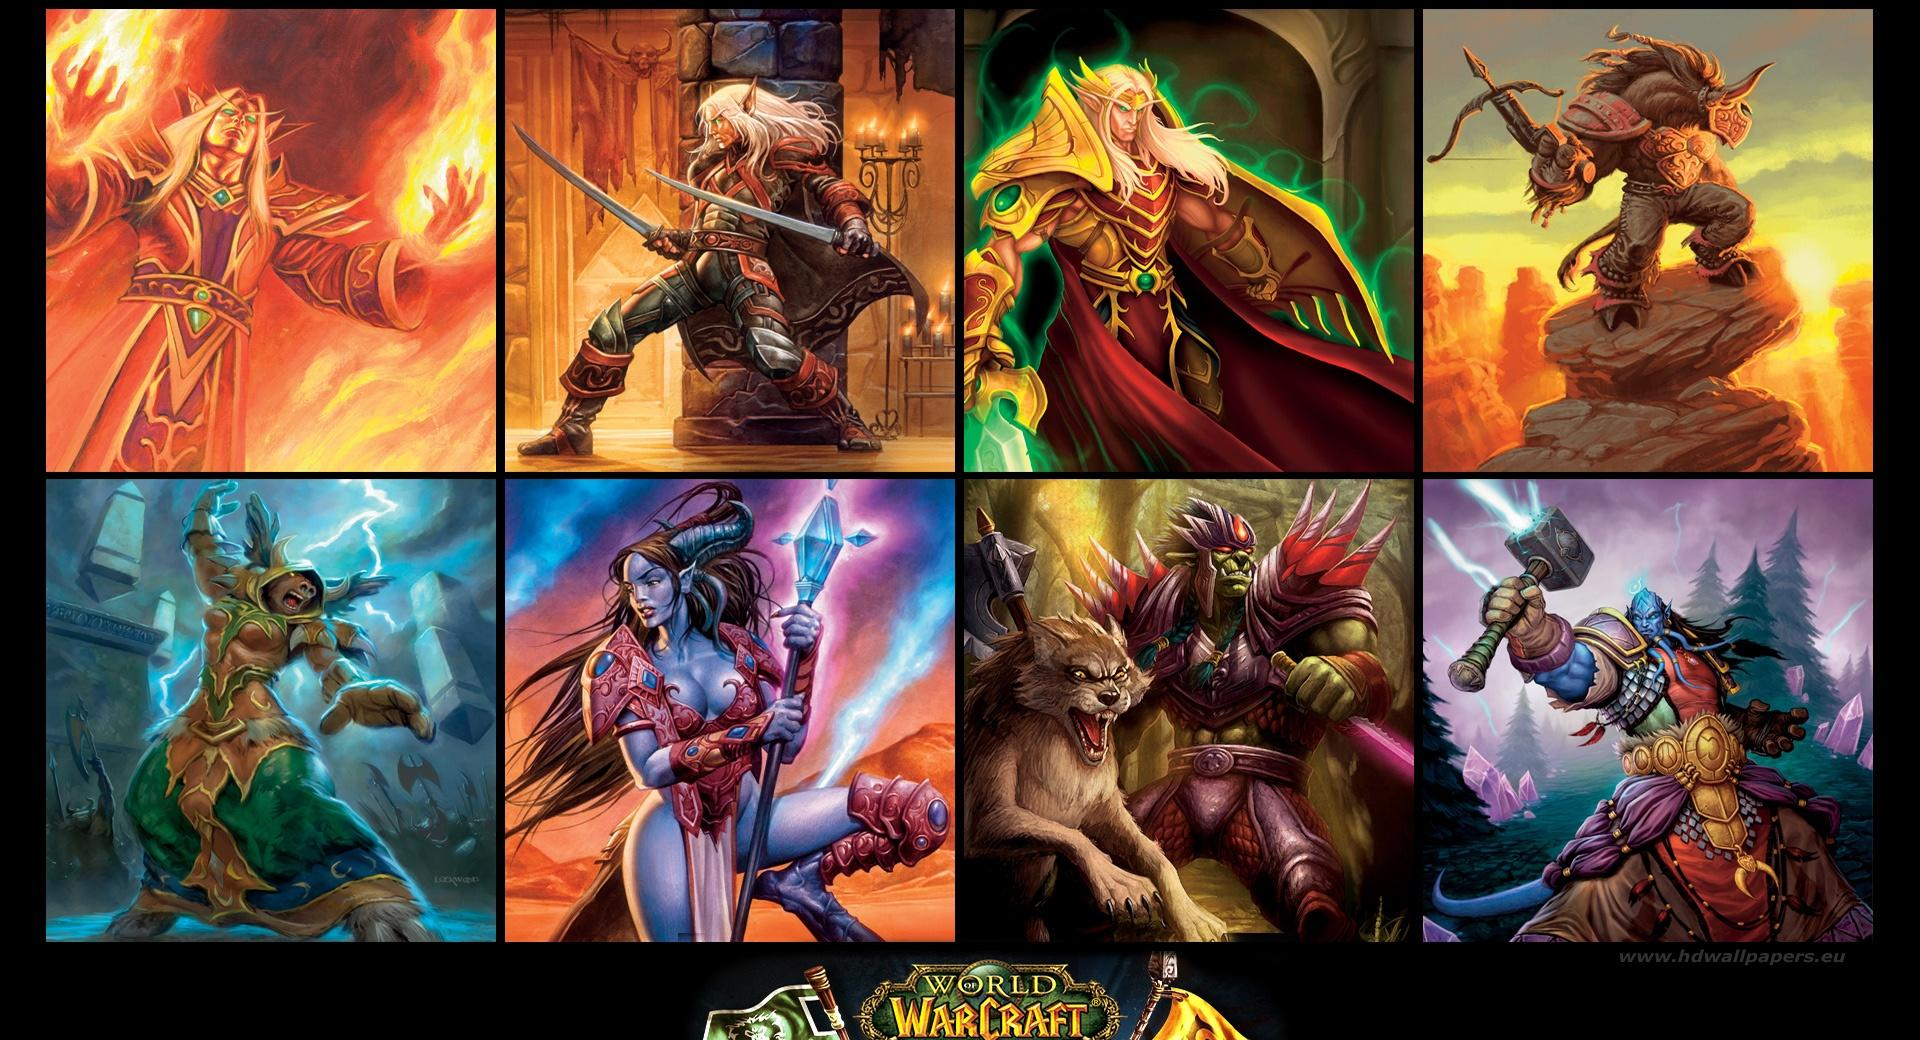 World of Warcraft, The Burning Crusade at 1152 x 864 size wallpapers HD quality